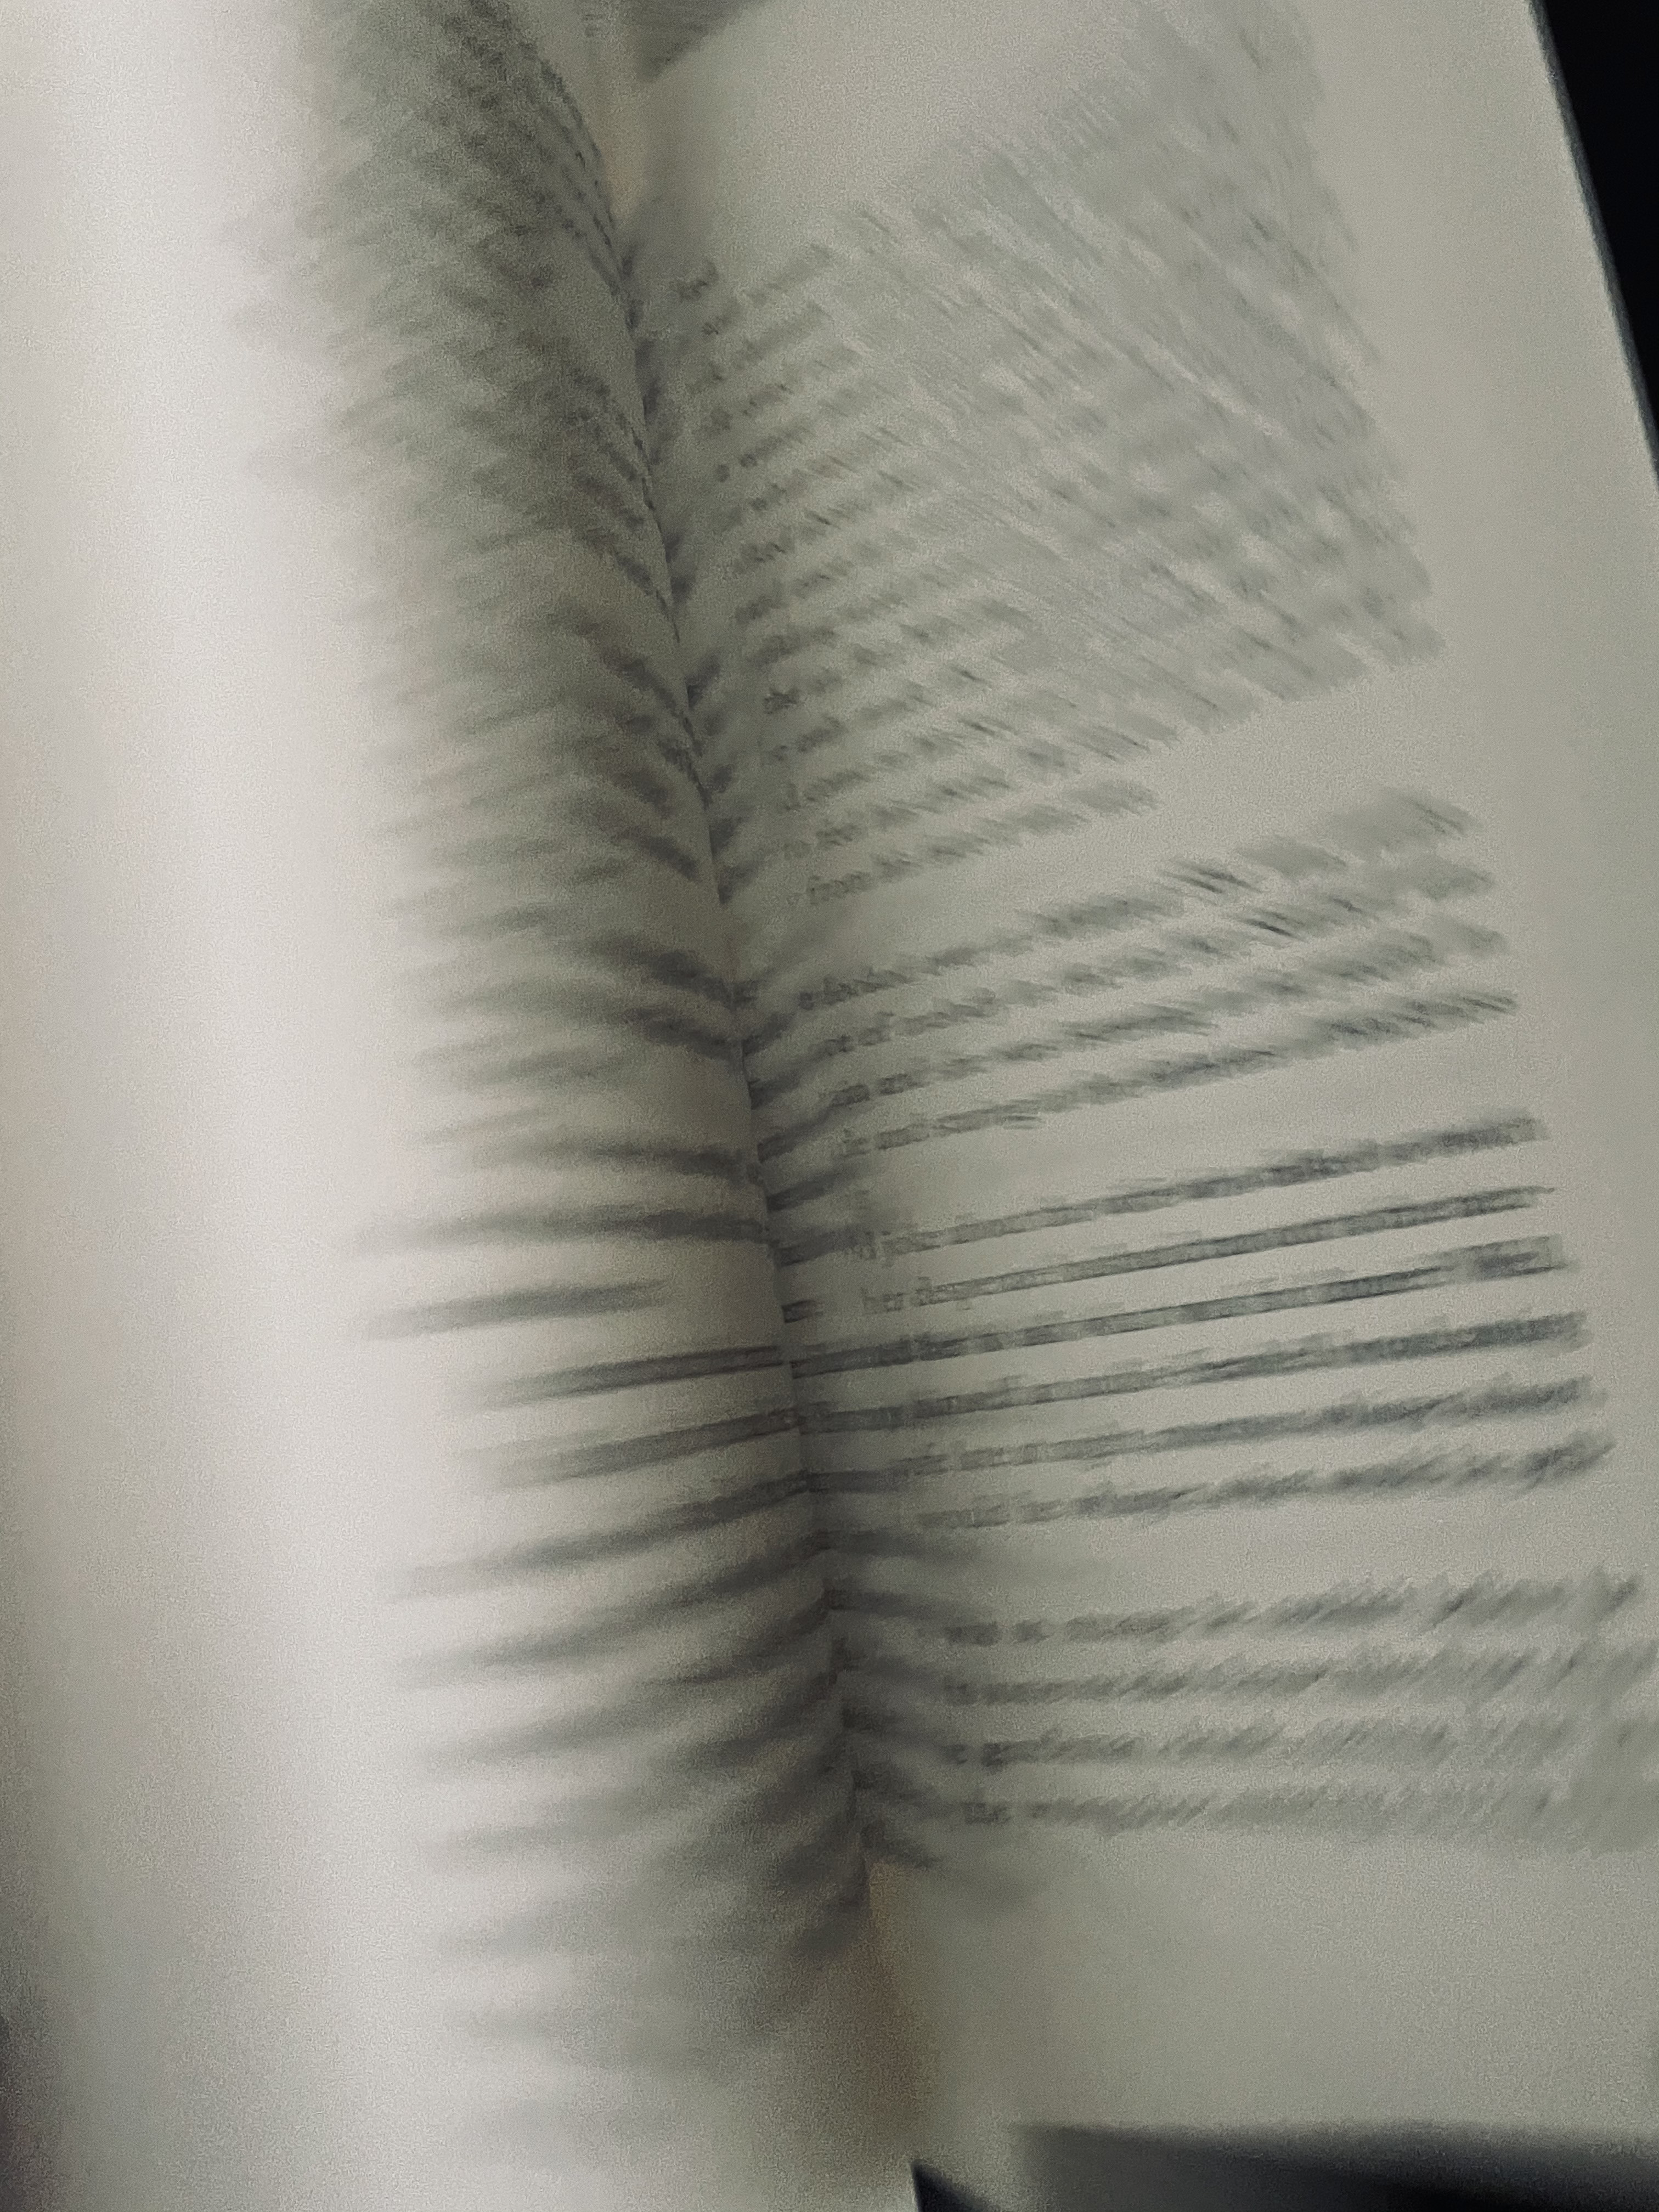 The motion of book pages turning. Photo taken by the author.